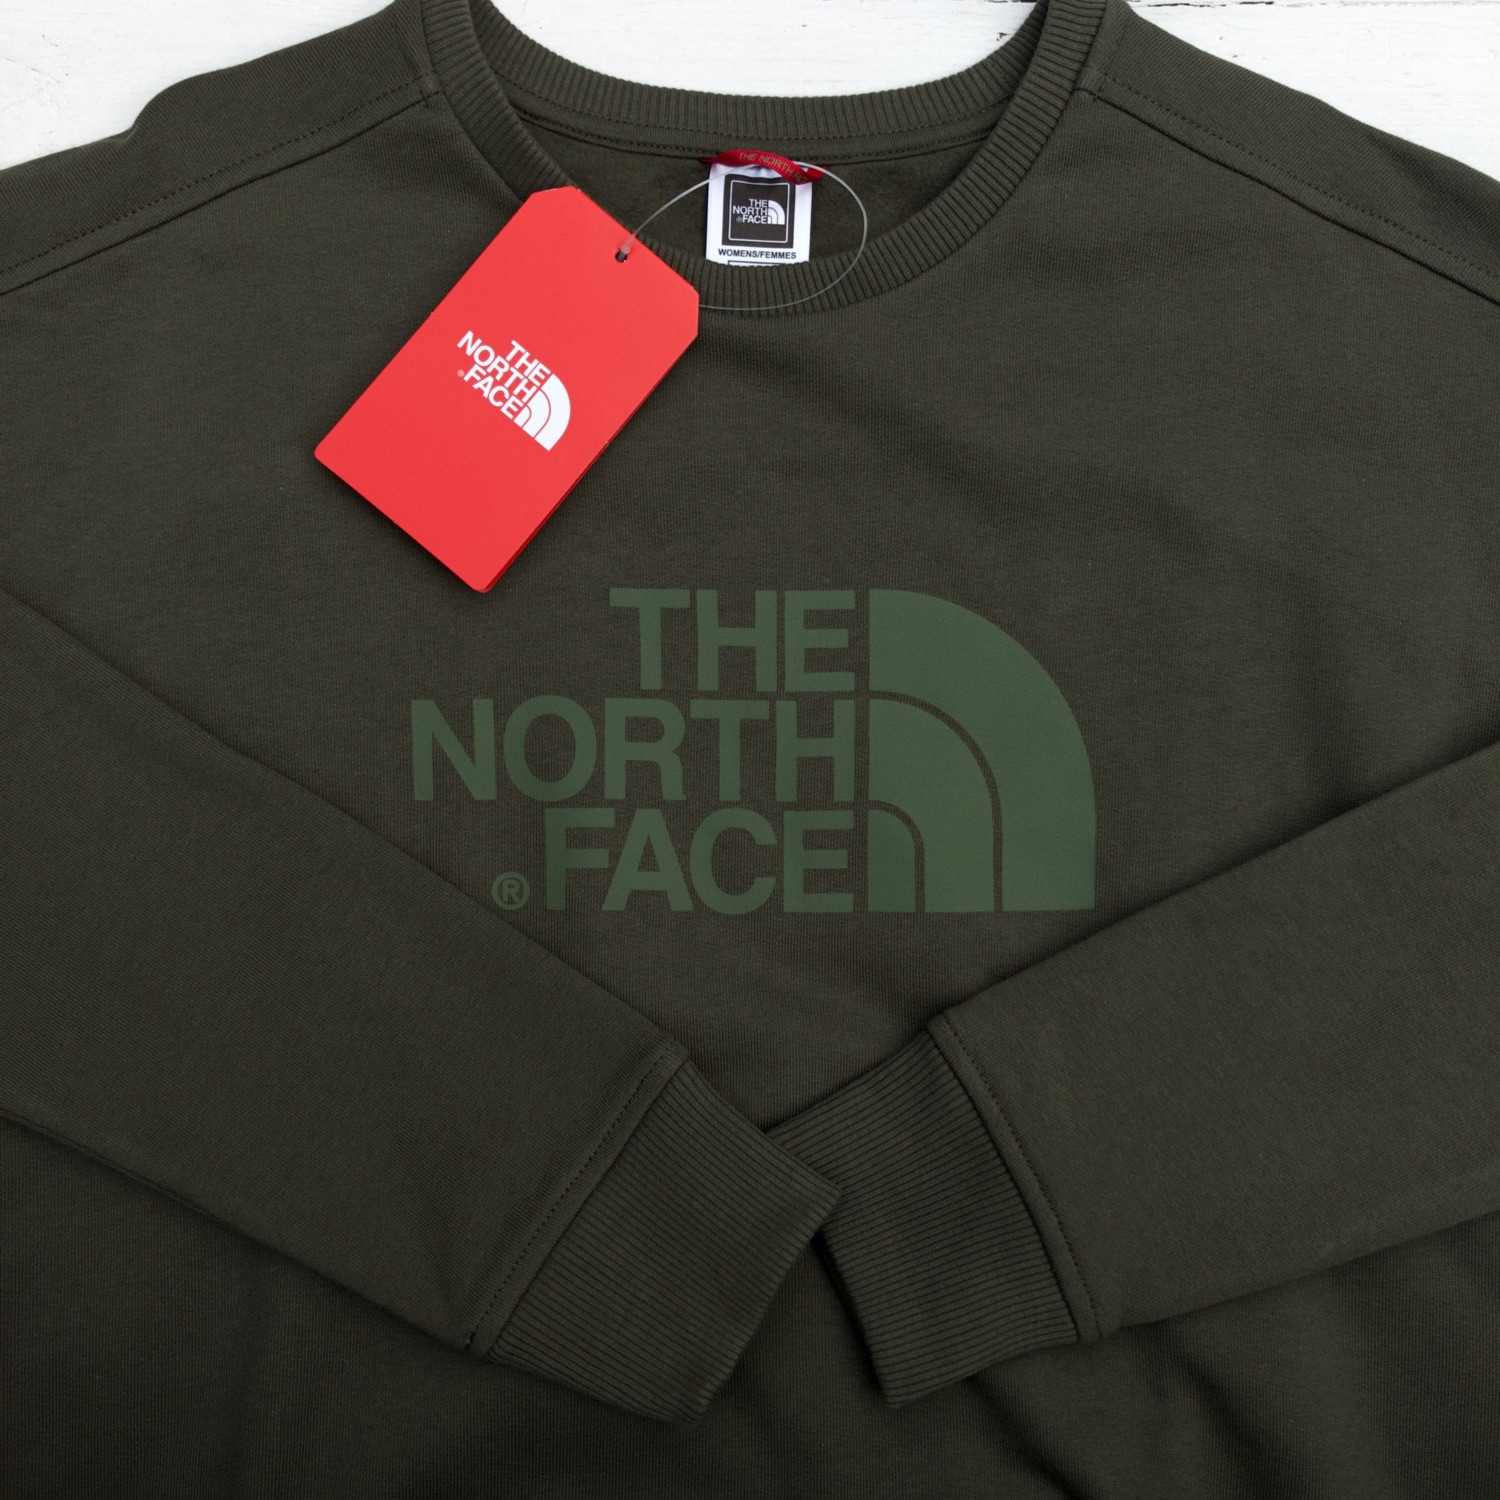 f985a1fb6 Brand New Green The North Face Sweater / Jumper